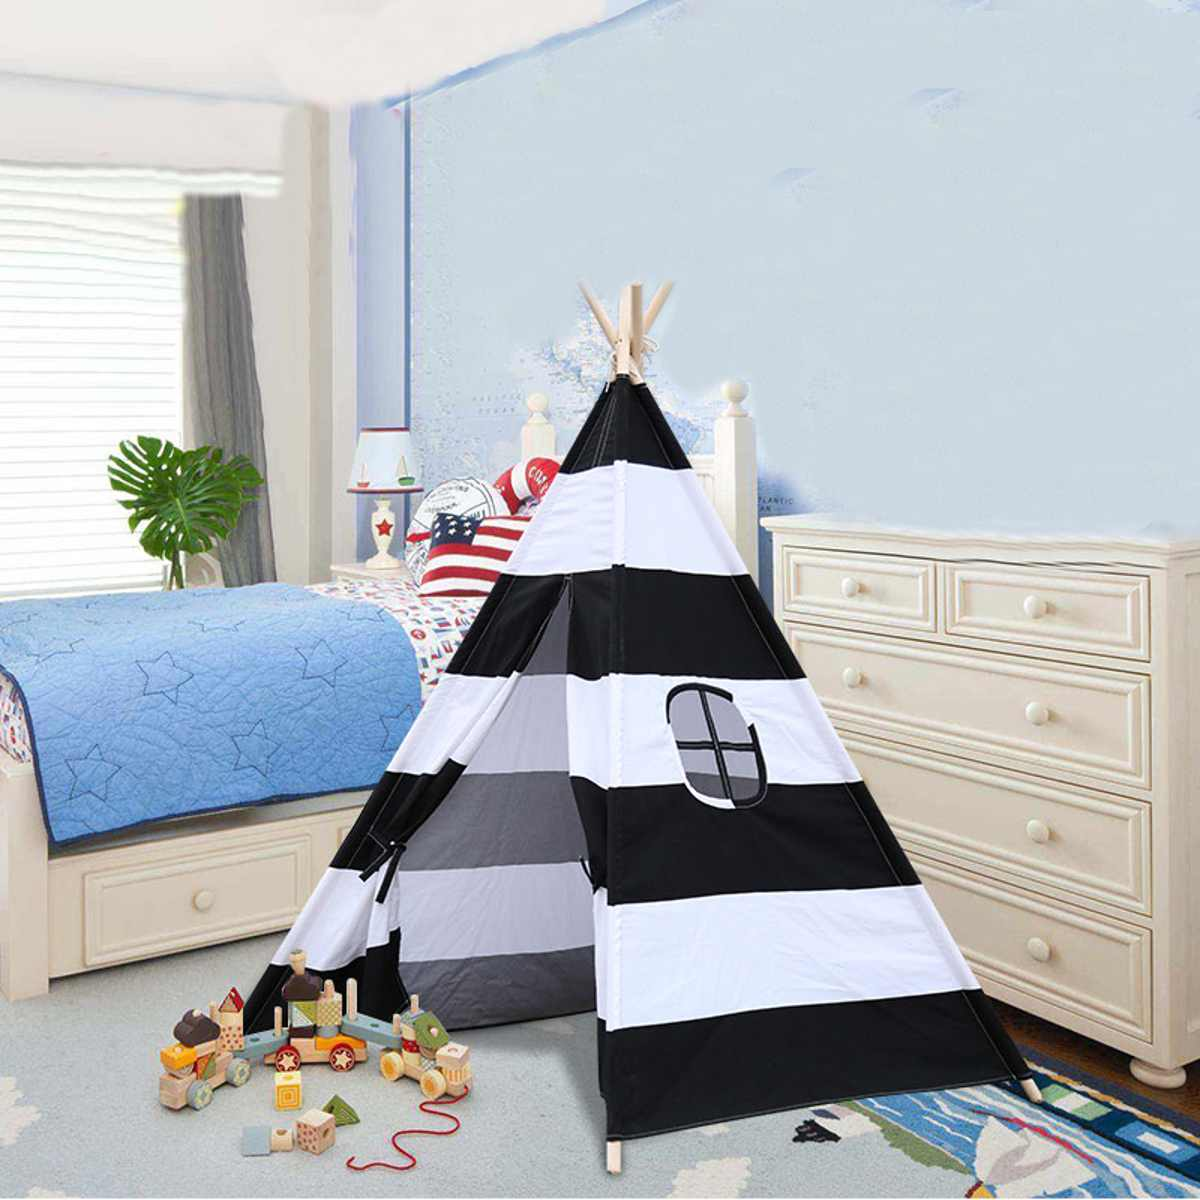 Folding Portable Kids Large Canvas Teepee For Indoor & Outdoor - Harris & Bains Pet Shop